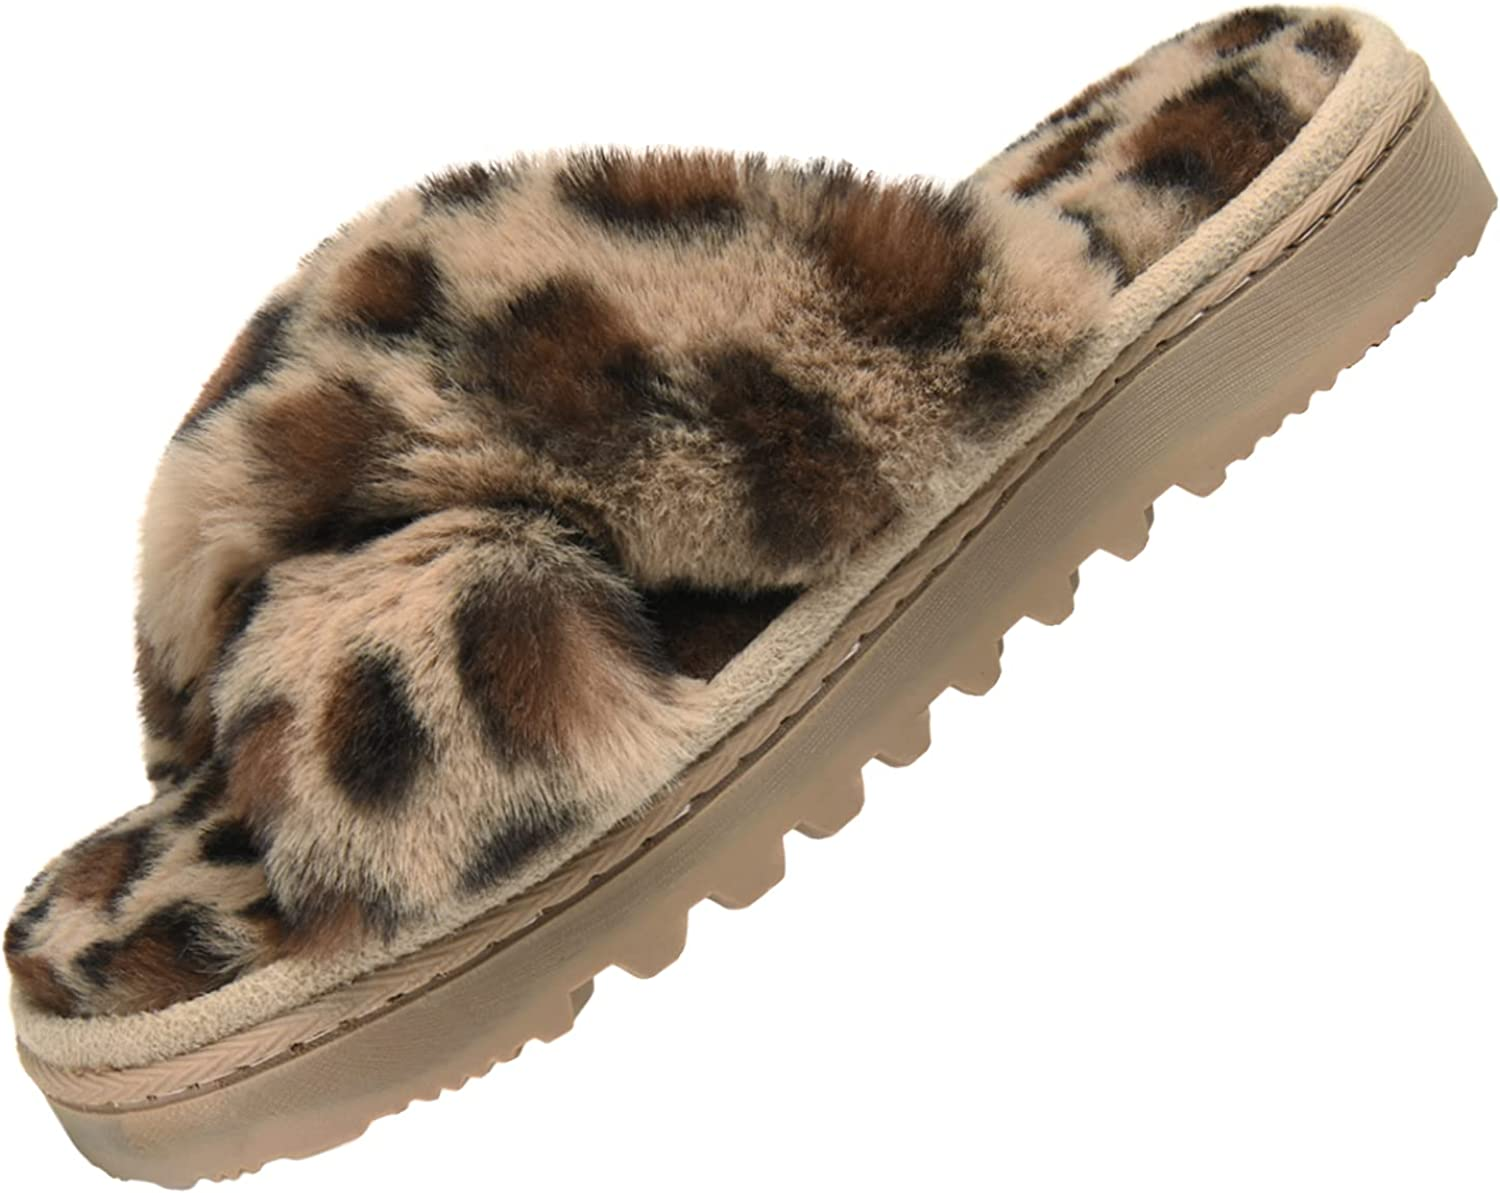 Telifor Max 85% OFF Womens-Fluffy-Memory-Foam-Cross-Band-Slippers Outlet SALE Indoor Fu